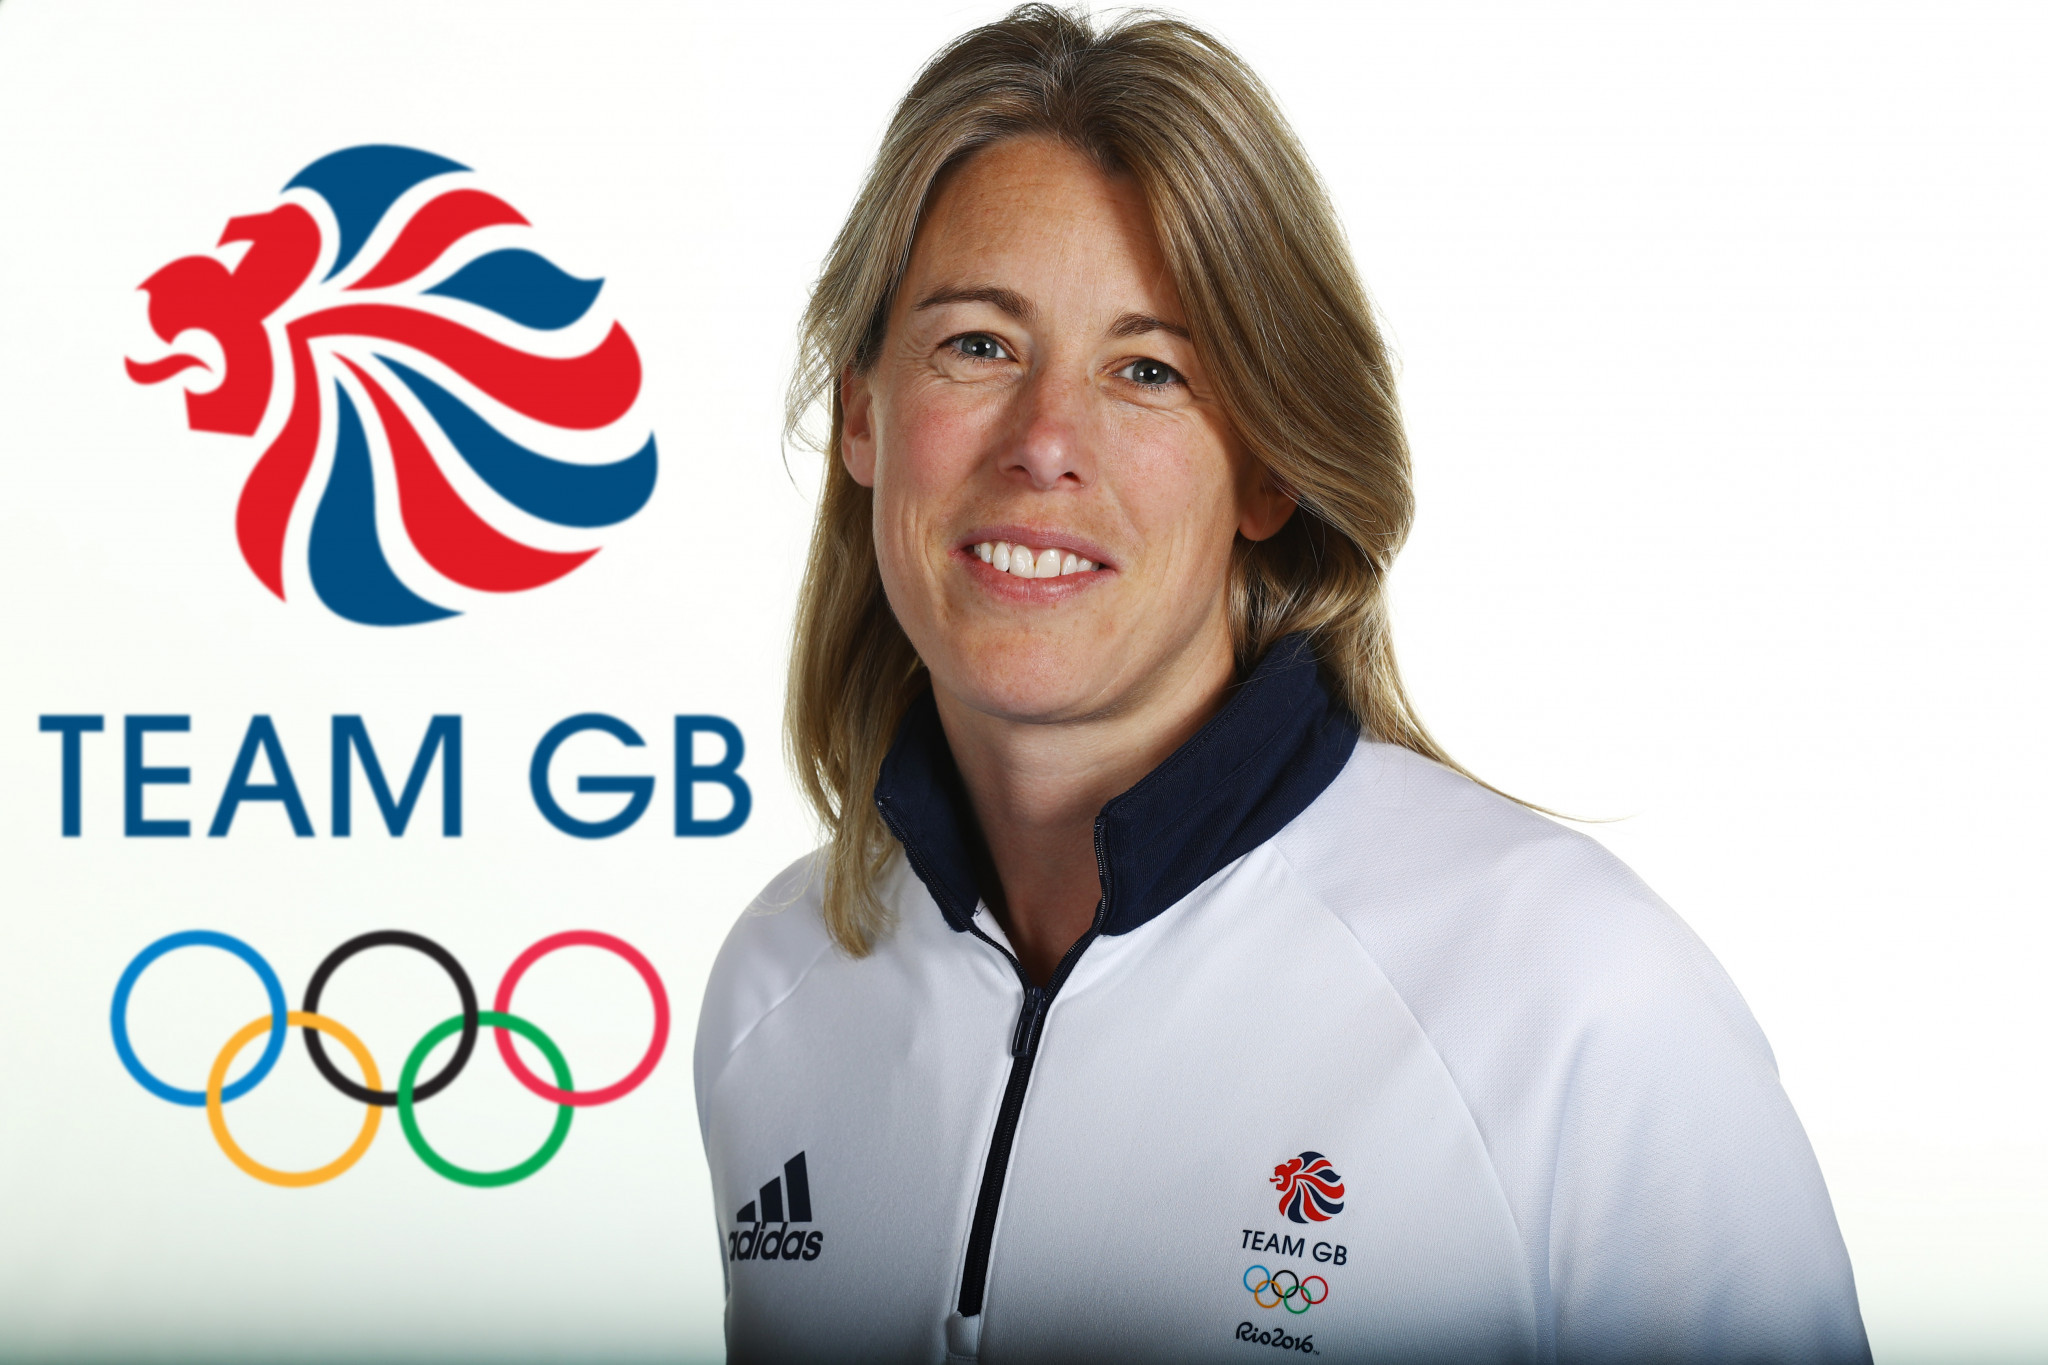 Former modern pentathlete named as Team GB's first ever female Chef de Mission for Beijing 2022